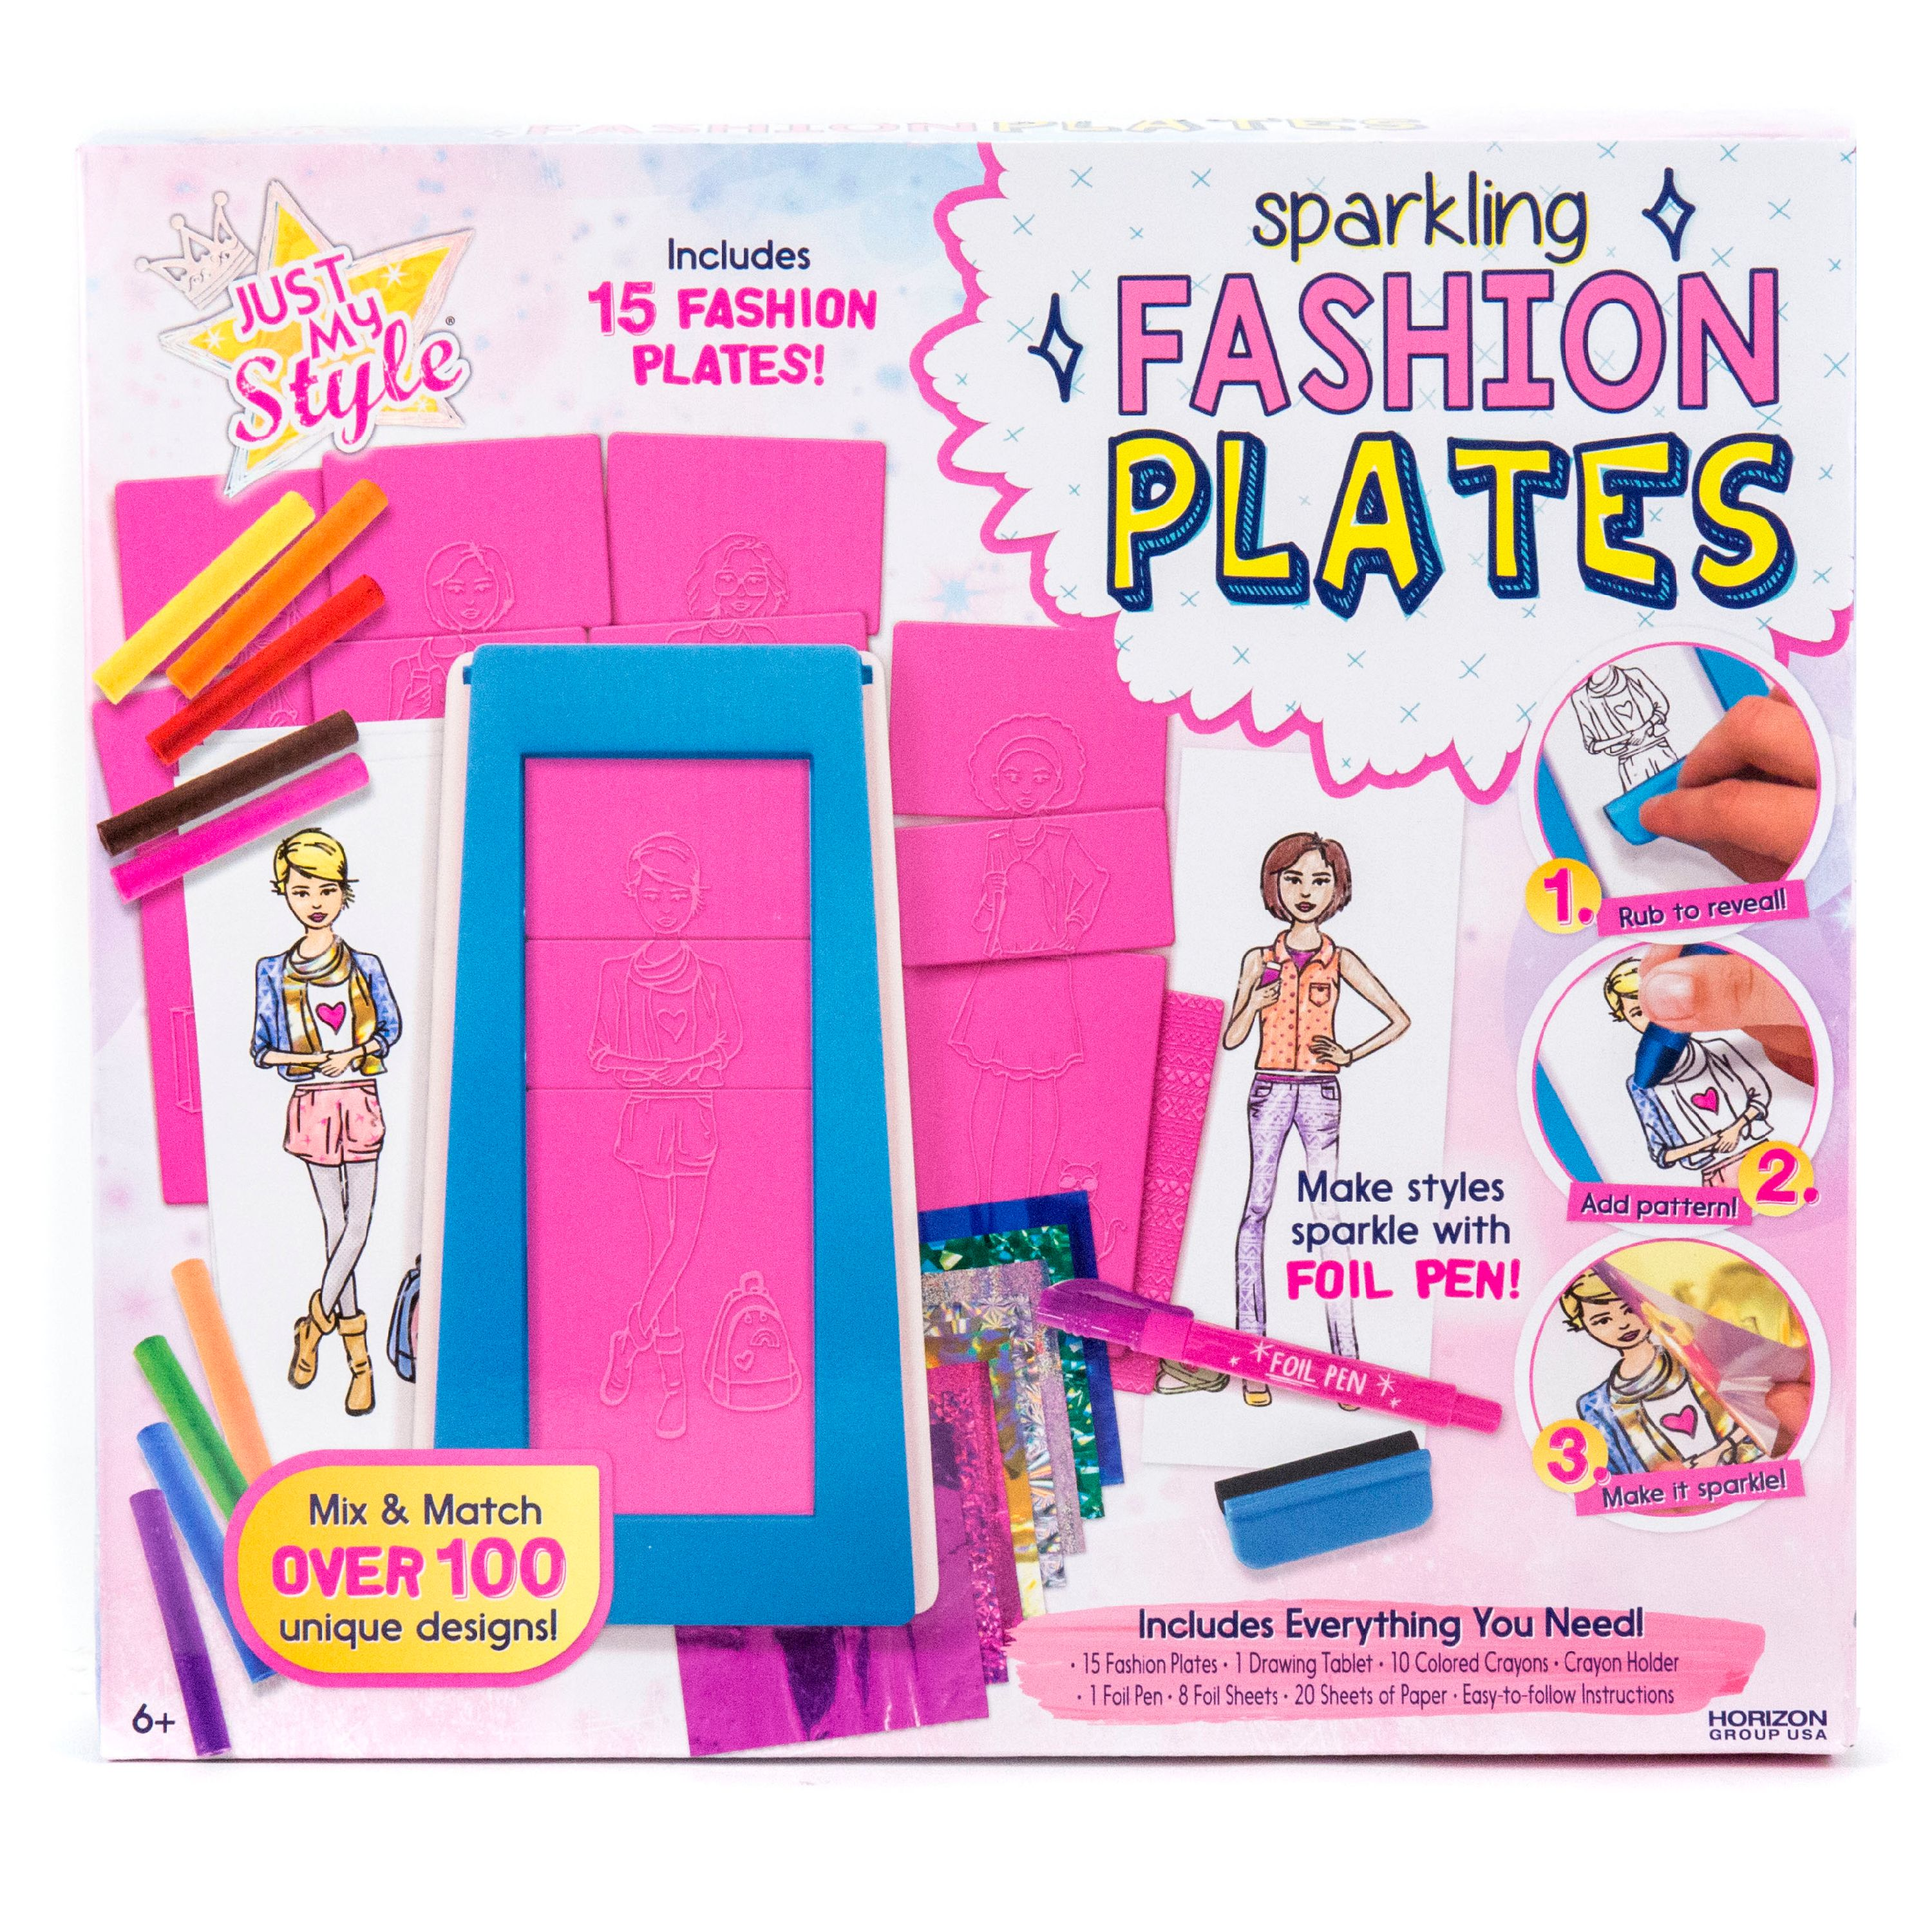 Just My Style Sparkling Fashion Plates, 1 Each